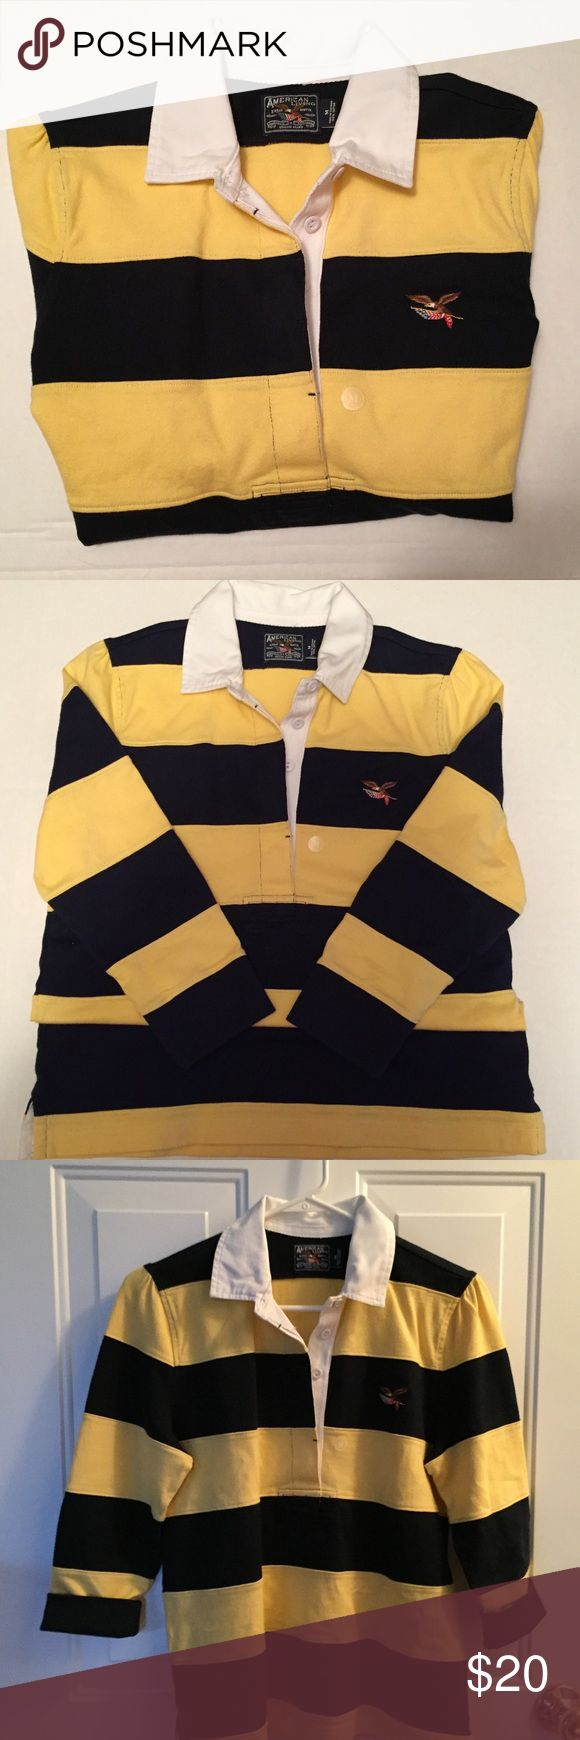 """Polo Shirt by American Living Sz M Juniors American Living Polo with Small American Flag and Eagle on Chest.Hidden Button Placket 3/4 Sleeves. The Cuffs can be Turned up. Deep Navy and Yellow. Size M Runs Small. 23"""" Long From Shoulder to End of Hem.18"""" Armpit to Armpit. Sleeves 18.5"""" From Shoulder to End of Cuff. Never Worn. 100% Cotton Tops"""